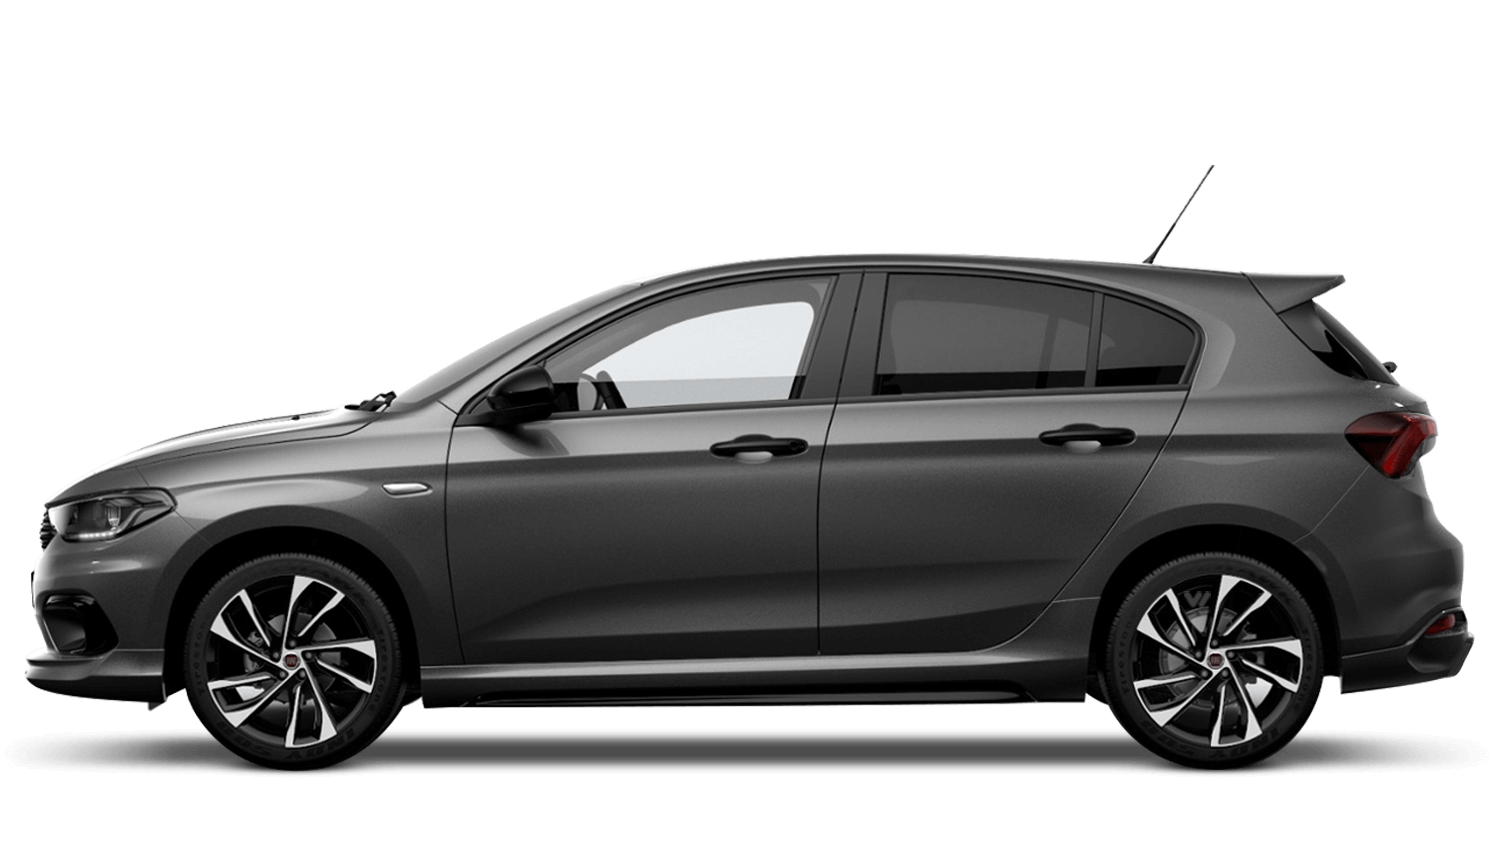 Electroclash Grey with Black Roof (Bi-Colour) FIAT Tipo Hatchback